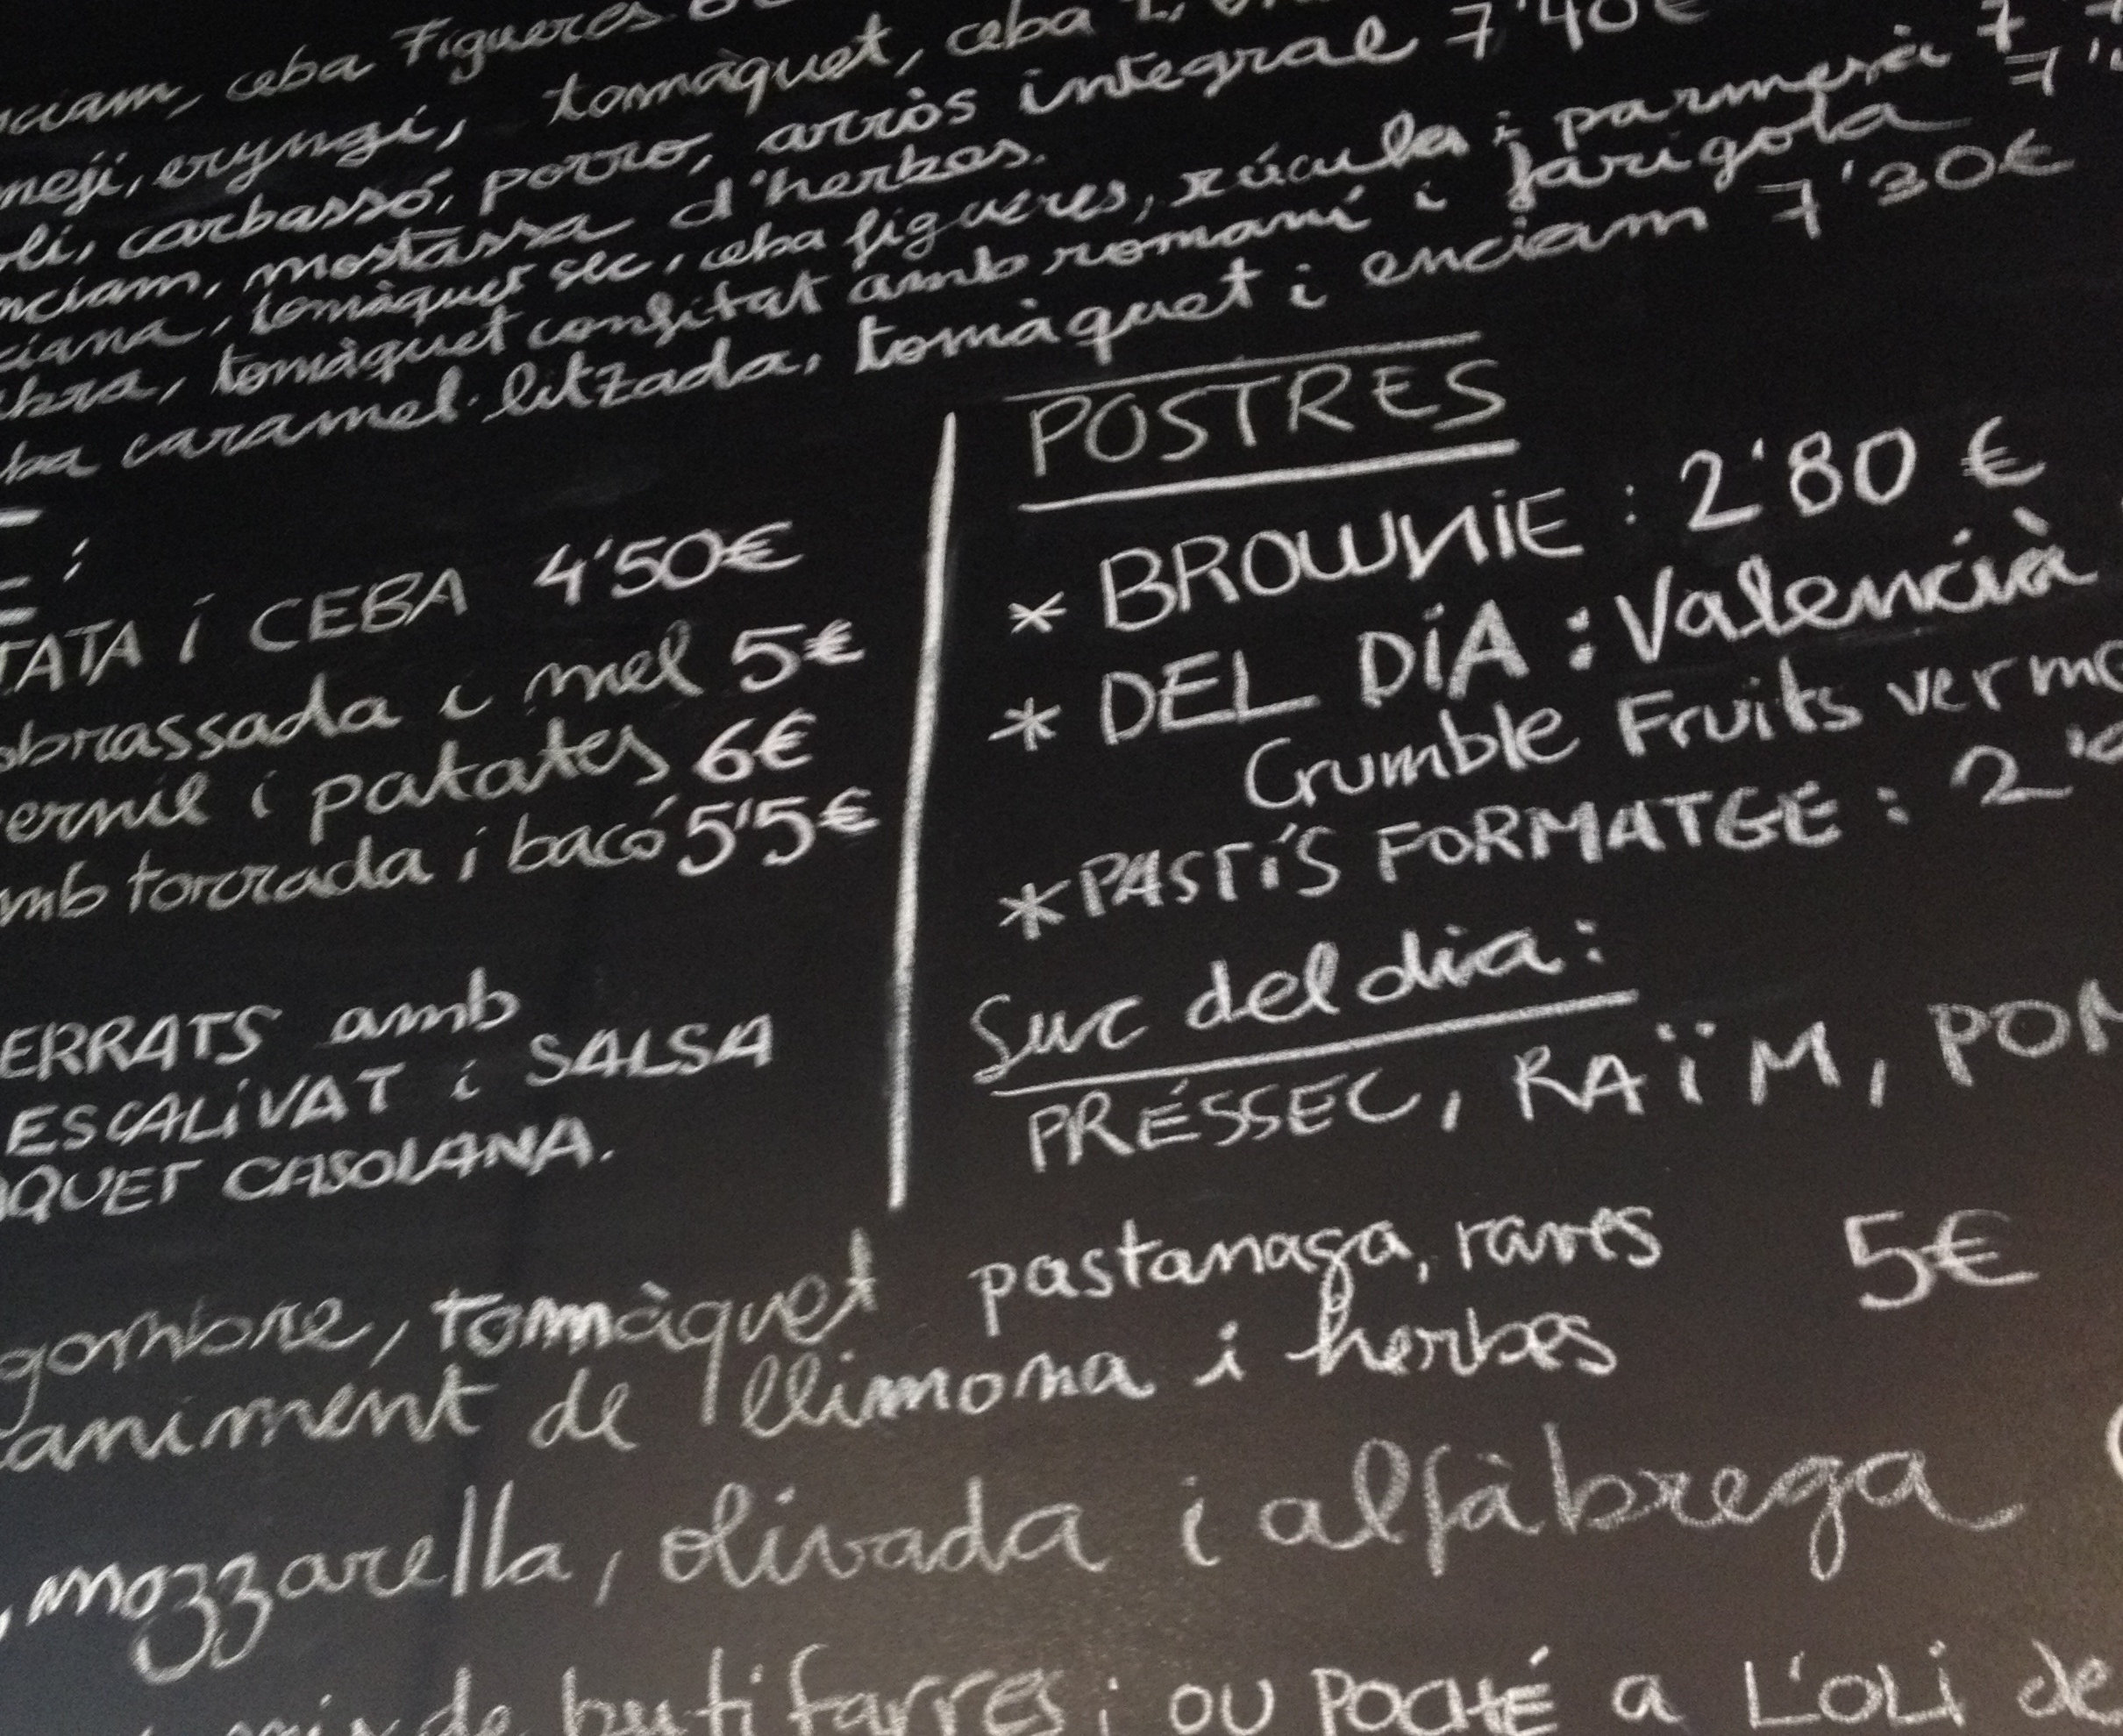 le coq and the burg menu